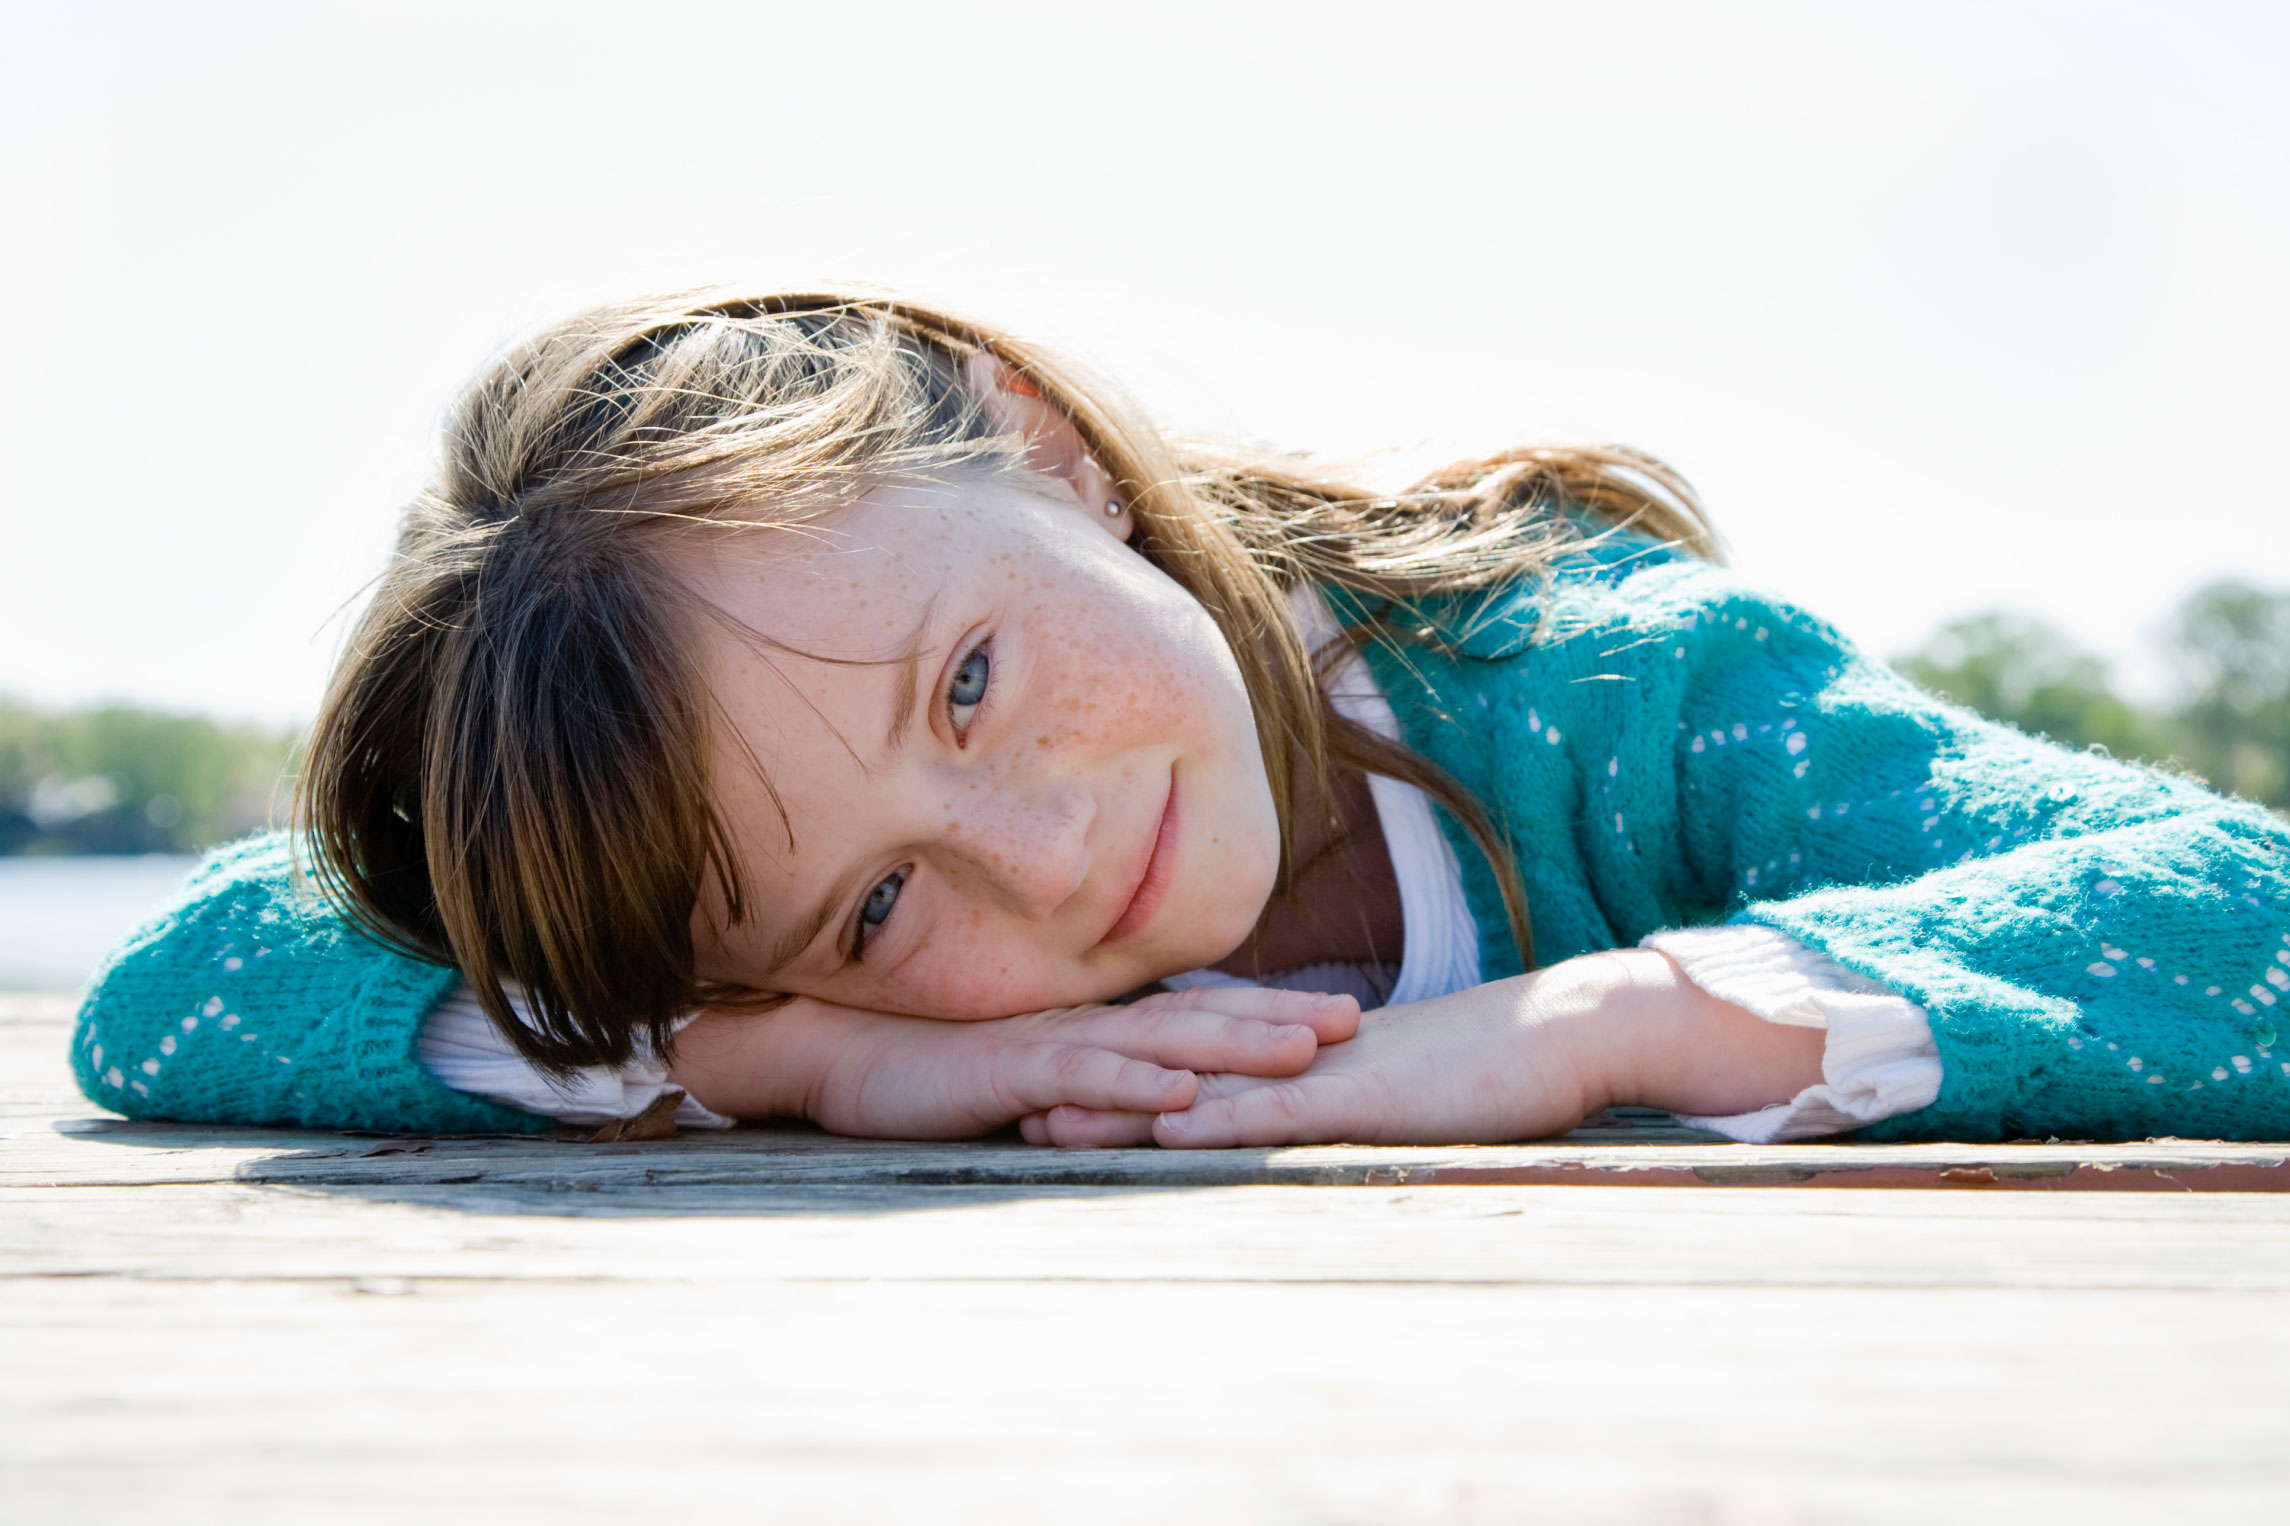 Girl (6-7), lying down resting head in arms on wooden deck, portrait